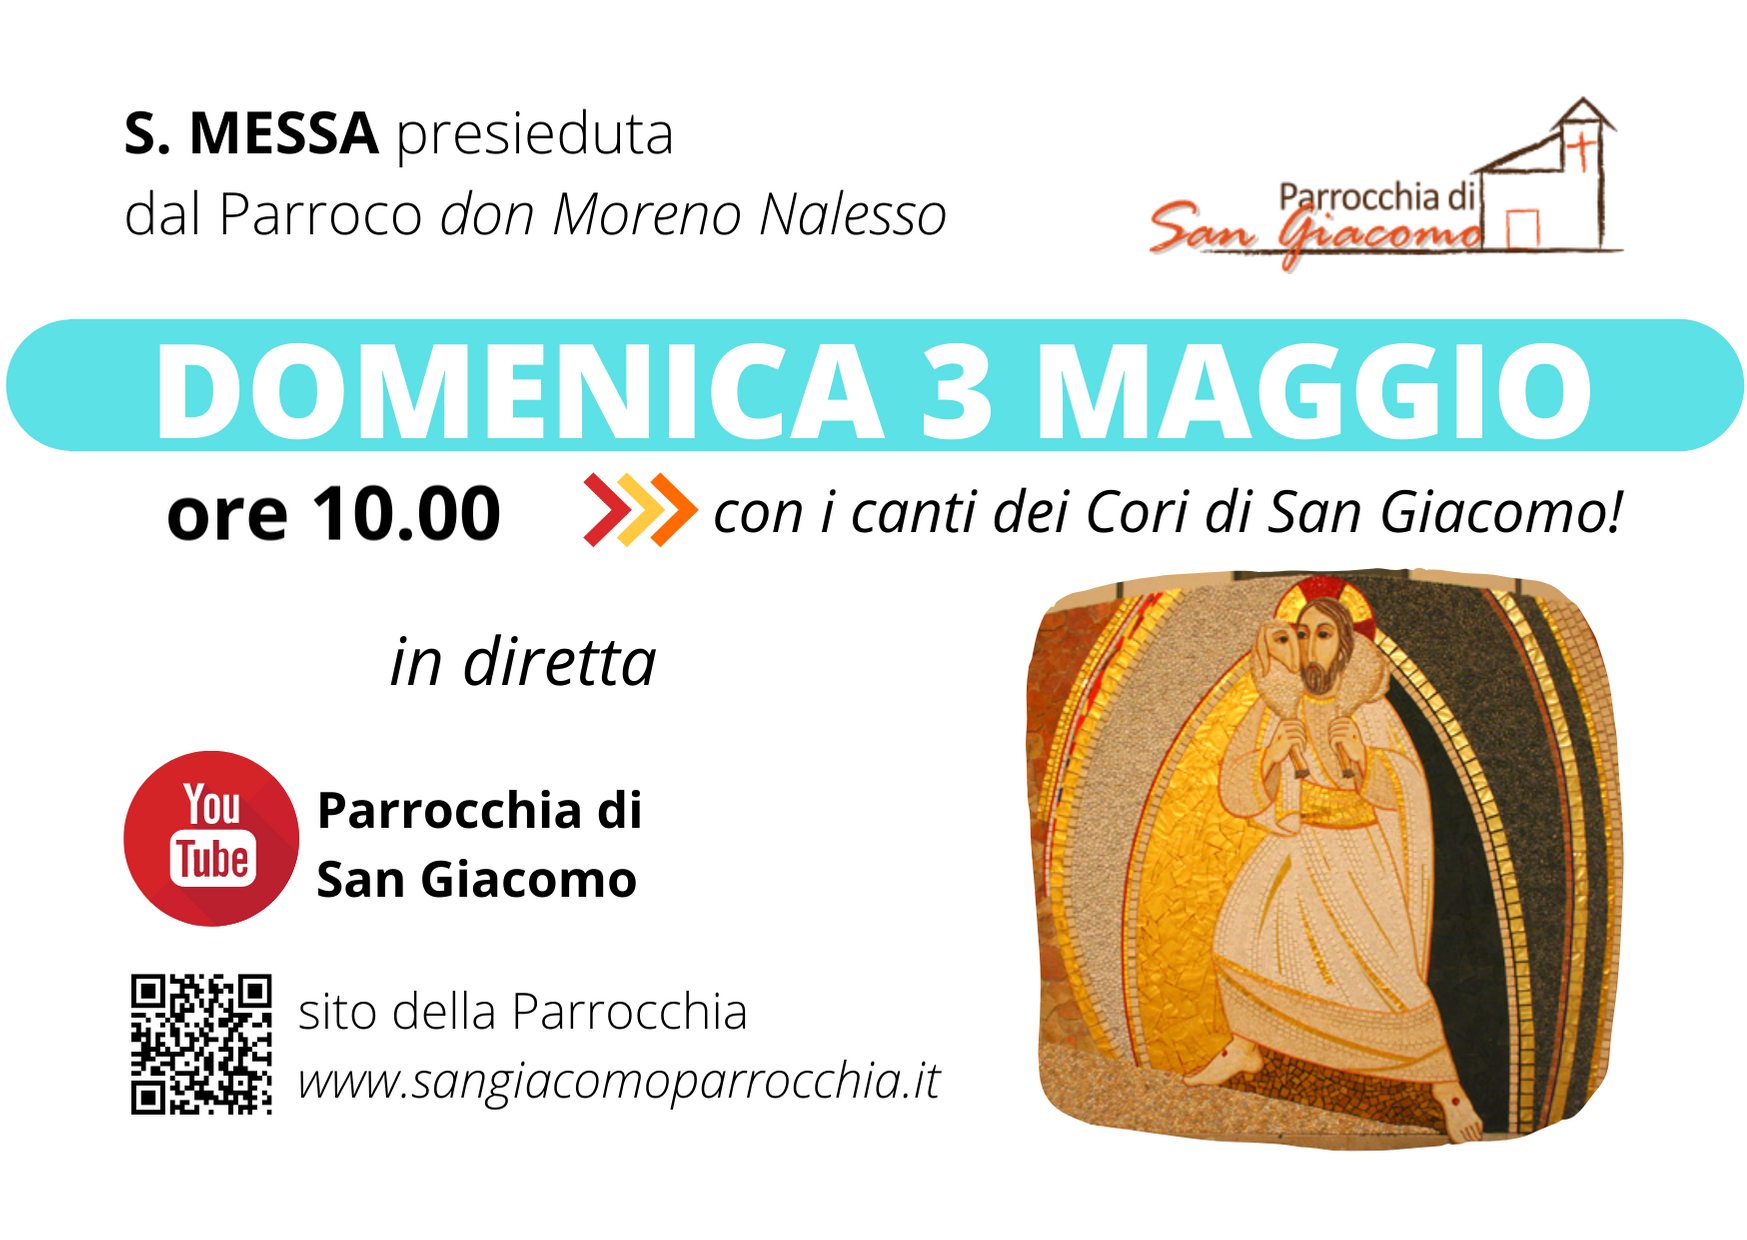 S. MESSA IN STREAMING 3 MAGGIO